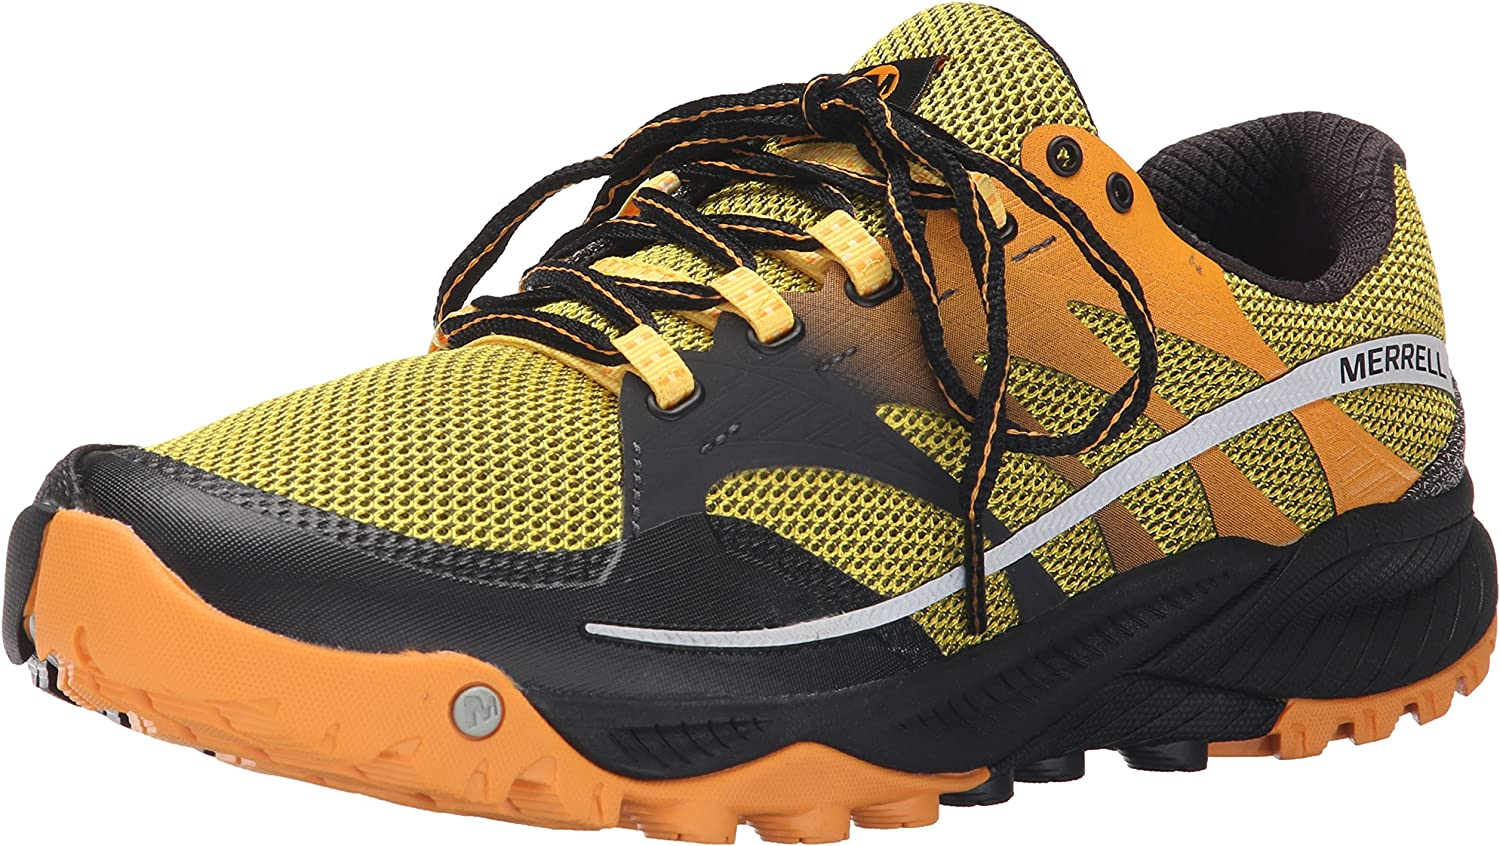 Merrell Men's All Out Charge Trail Running shoes, Yellow, 7 M US